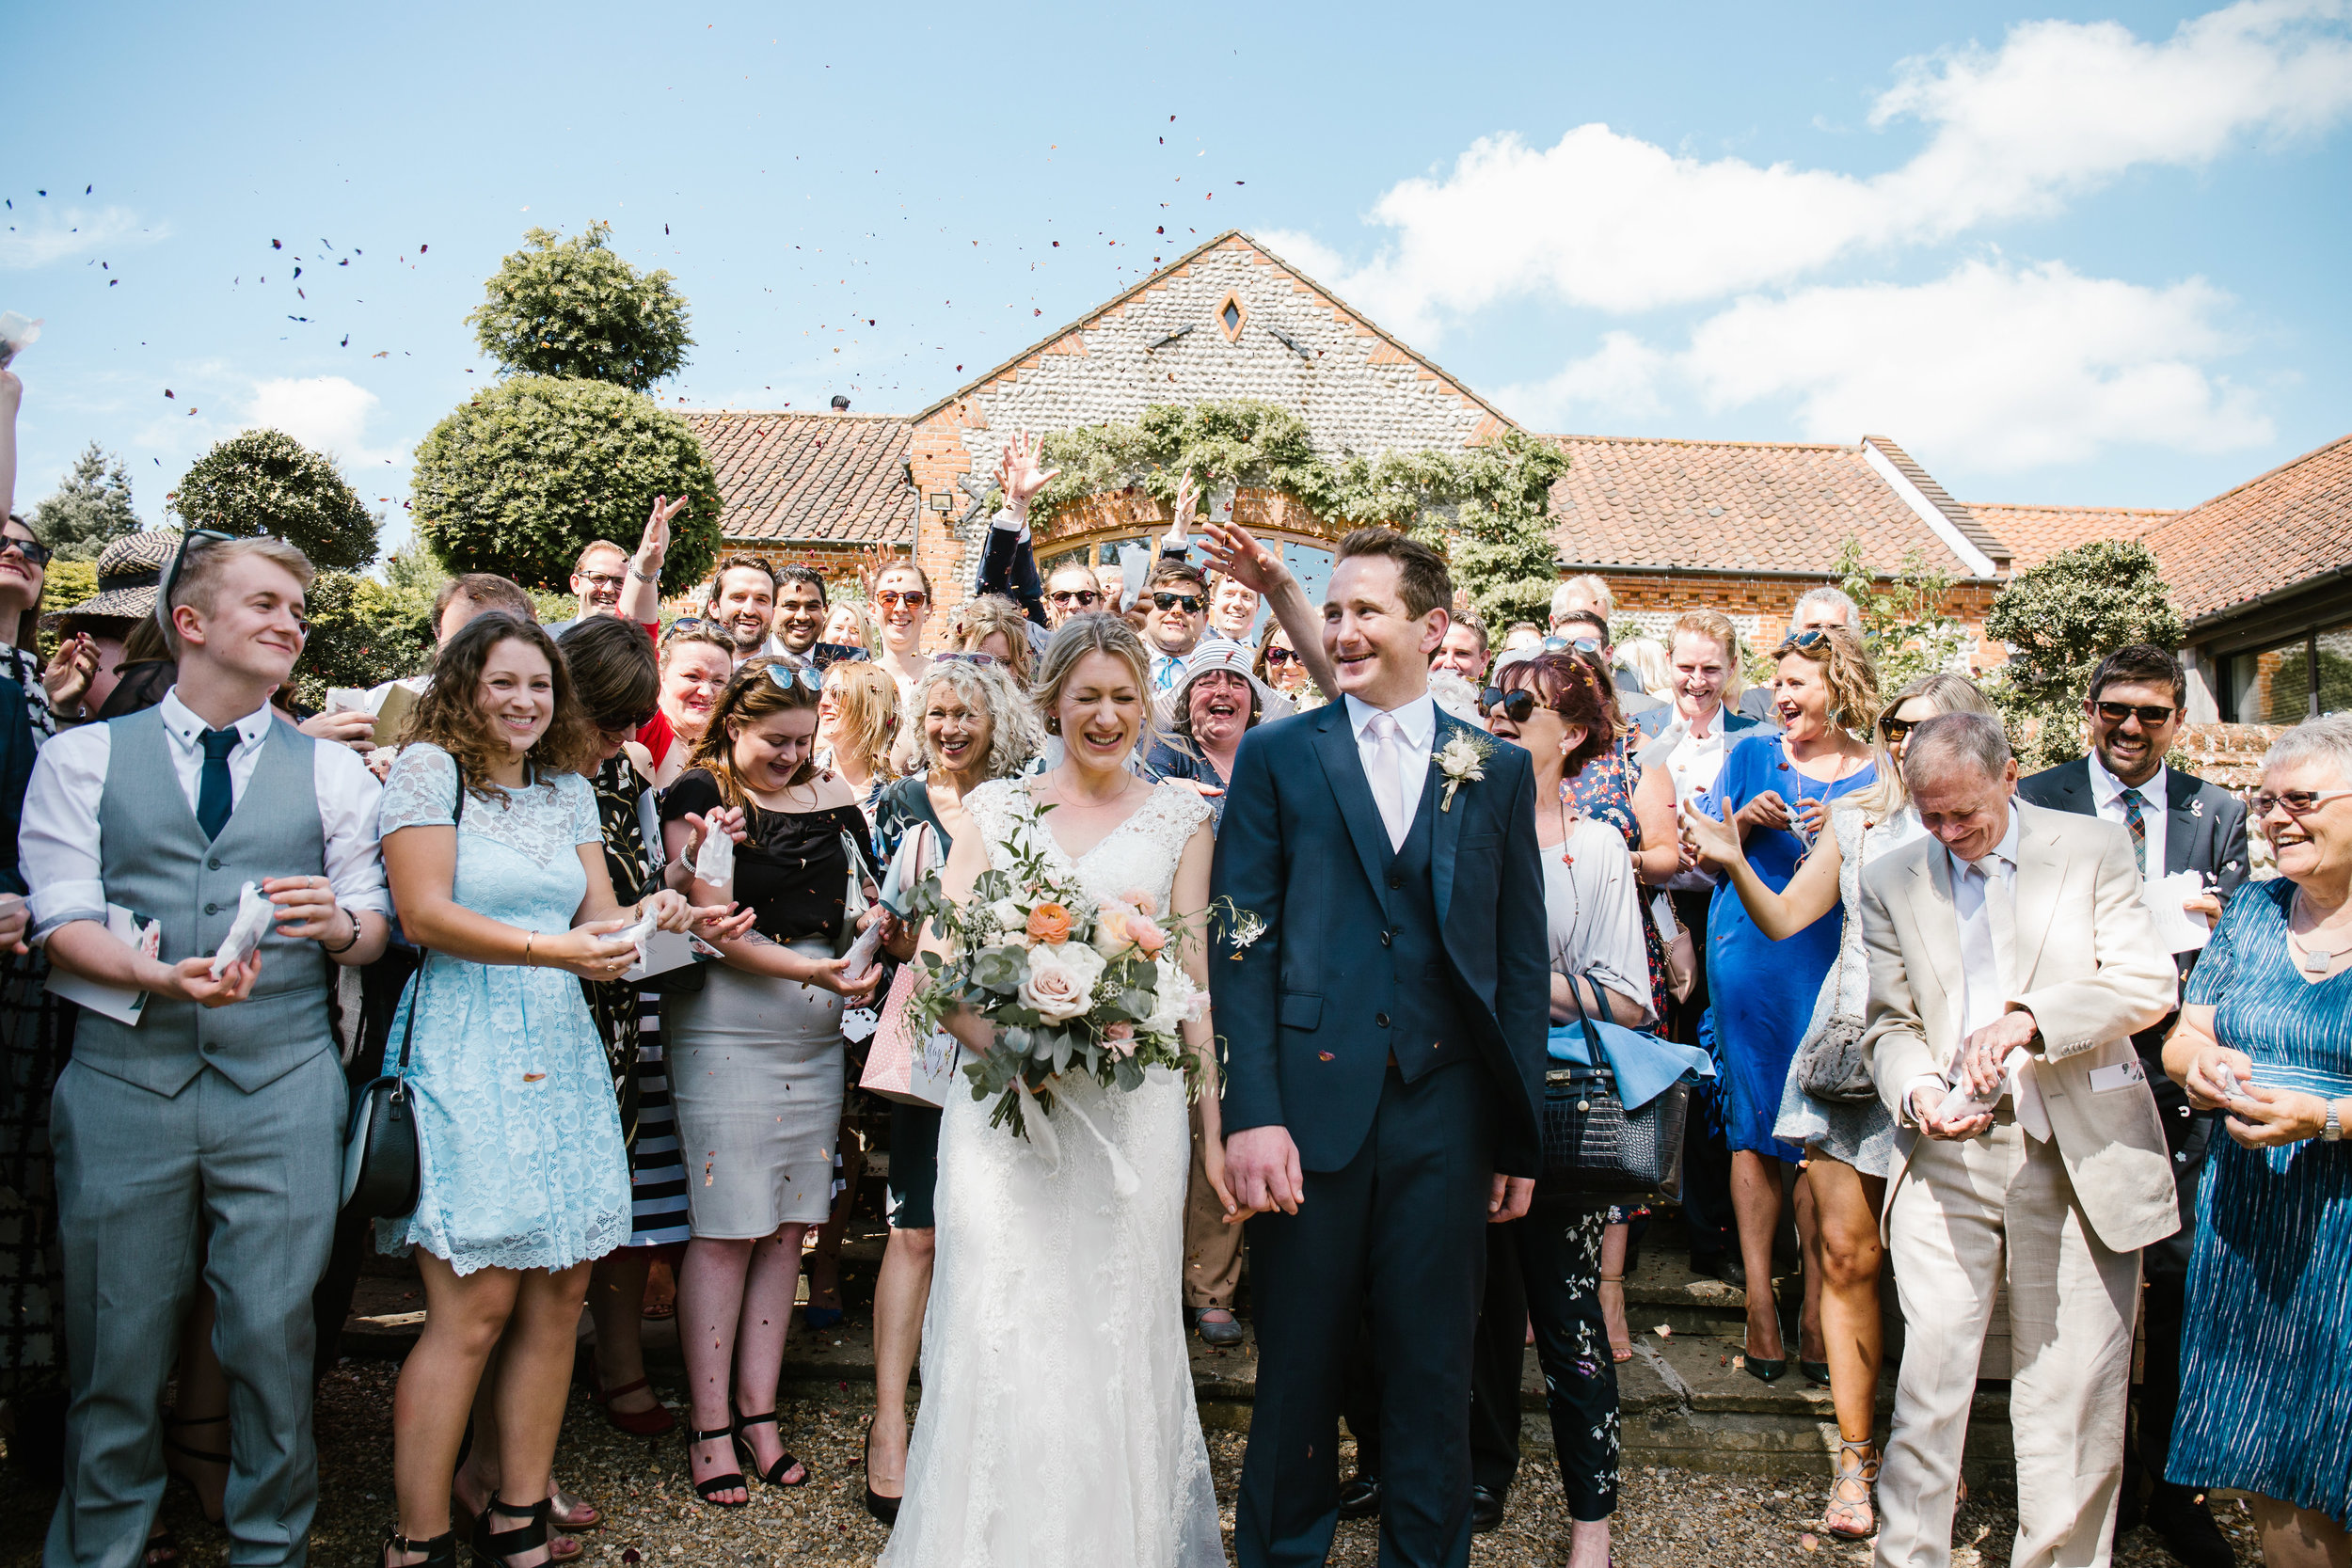 fun, natural photo of bride and groom being showered with confetti at chaucer barns norfolk